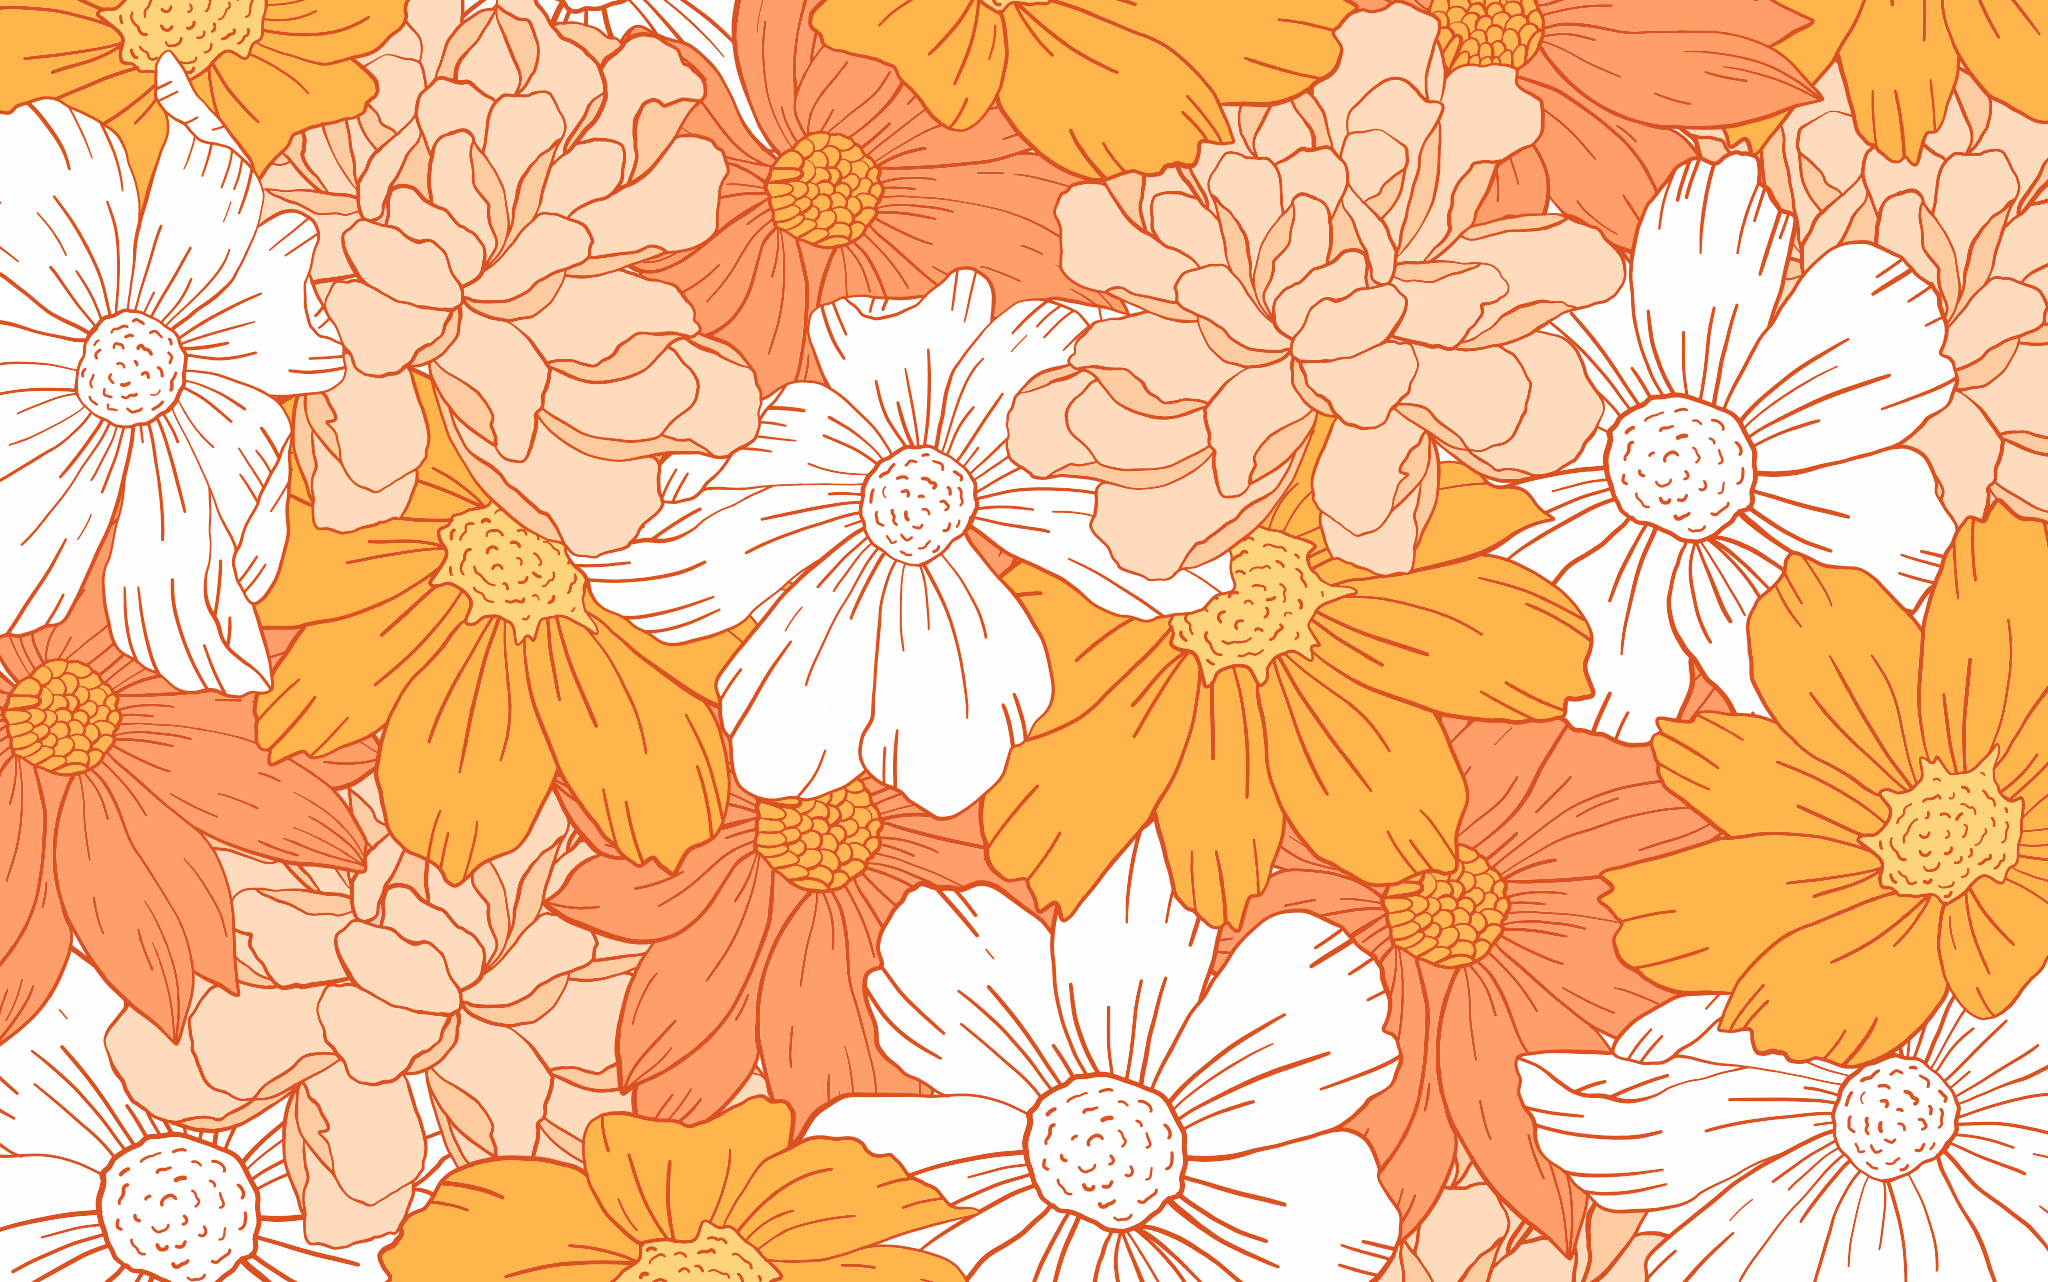 Aesthetic Wallpaper Mac Posted By Samantha Cunningham